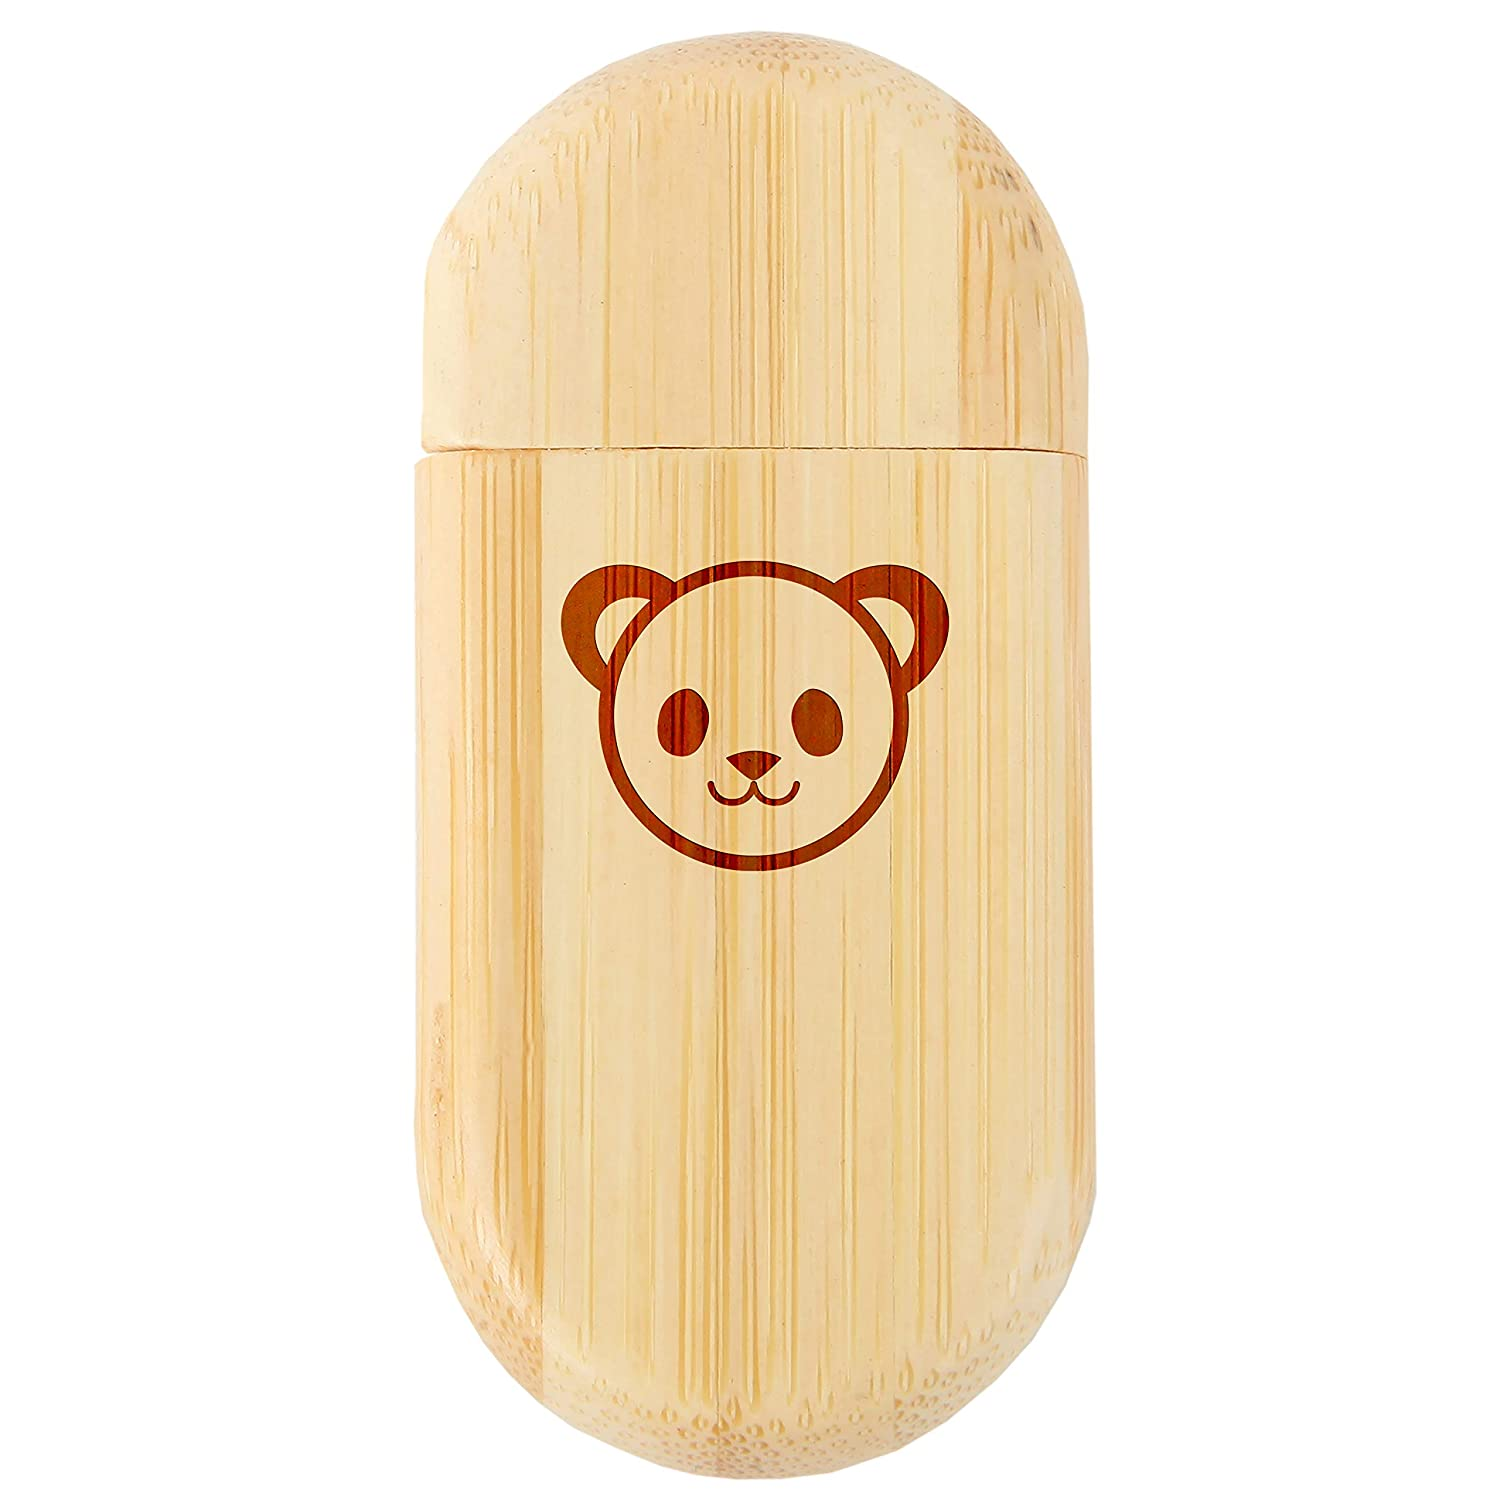 Panda Face 8Gb Bamboo USB Flash Drive with Rounded Corners 8Gb USB Gift for All Occasions Wood Flash Drive with Laser Engraving